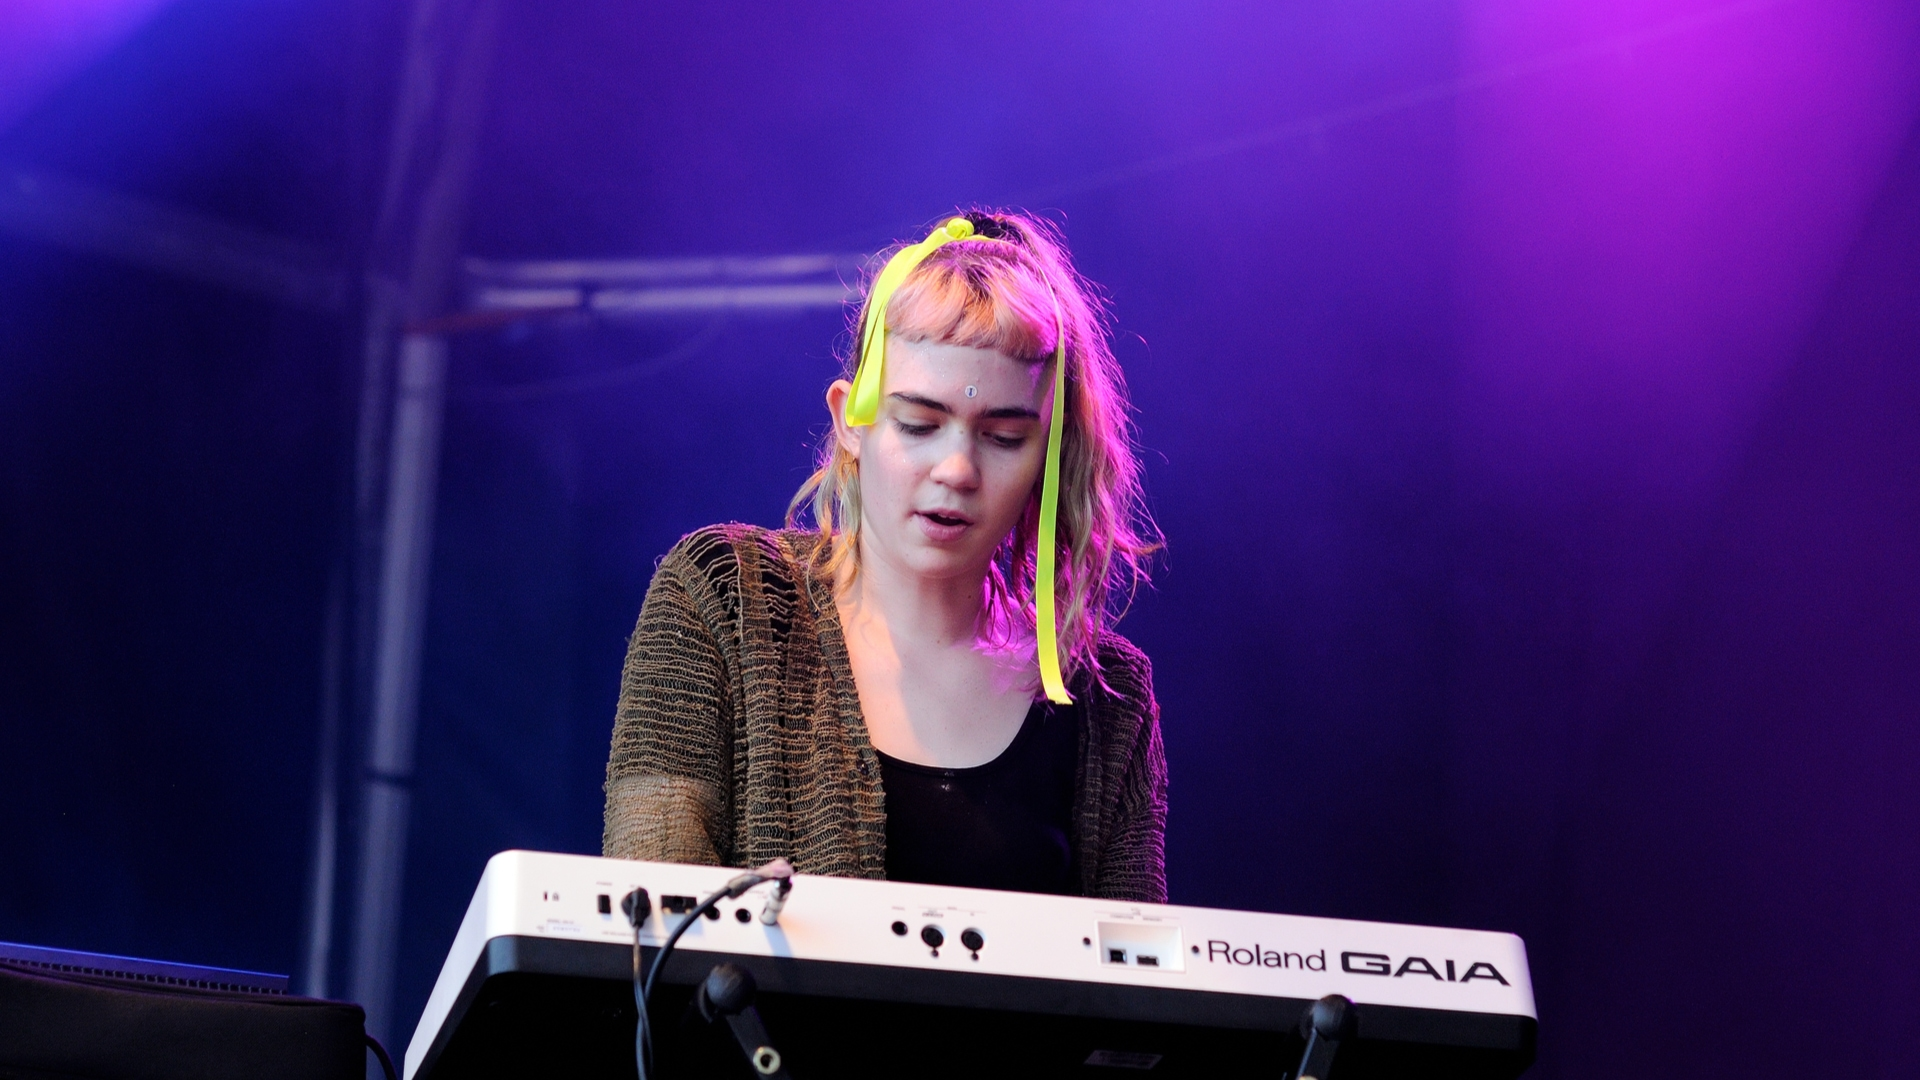 Grimes sells her soul for art